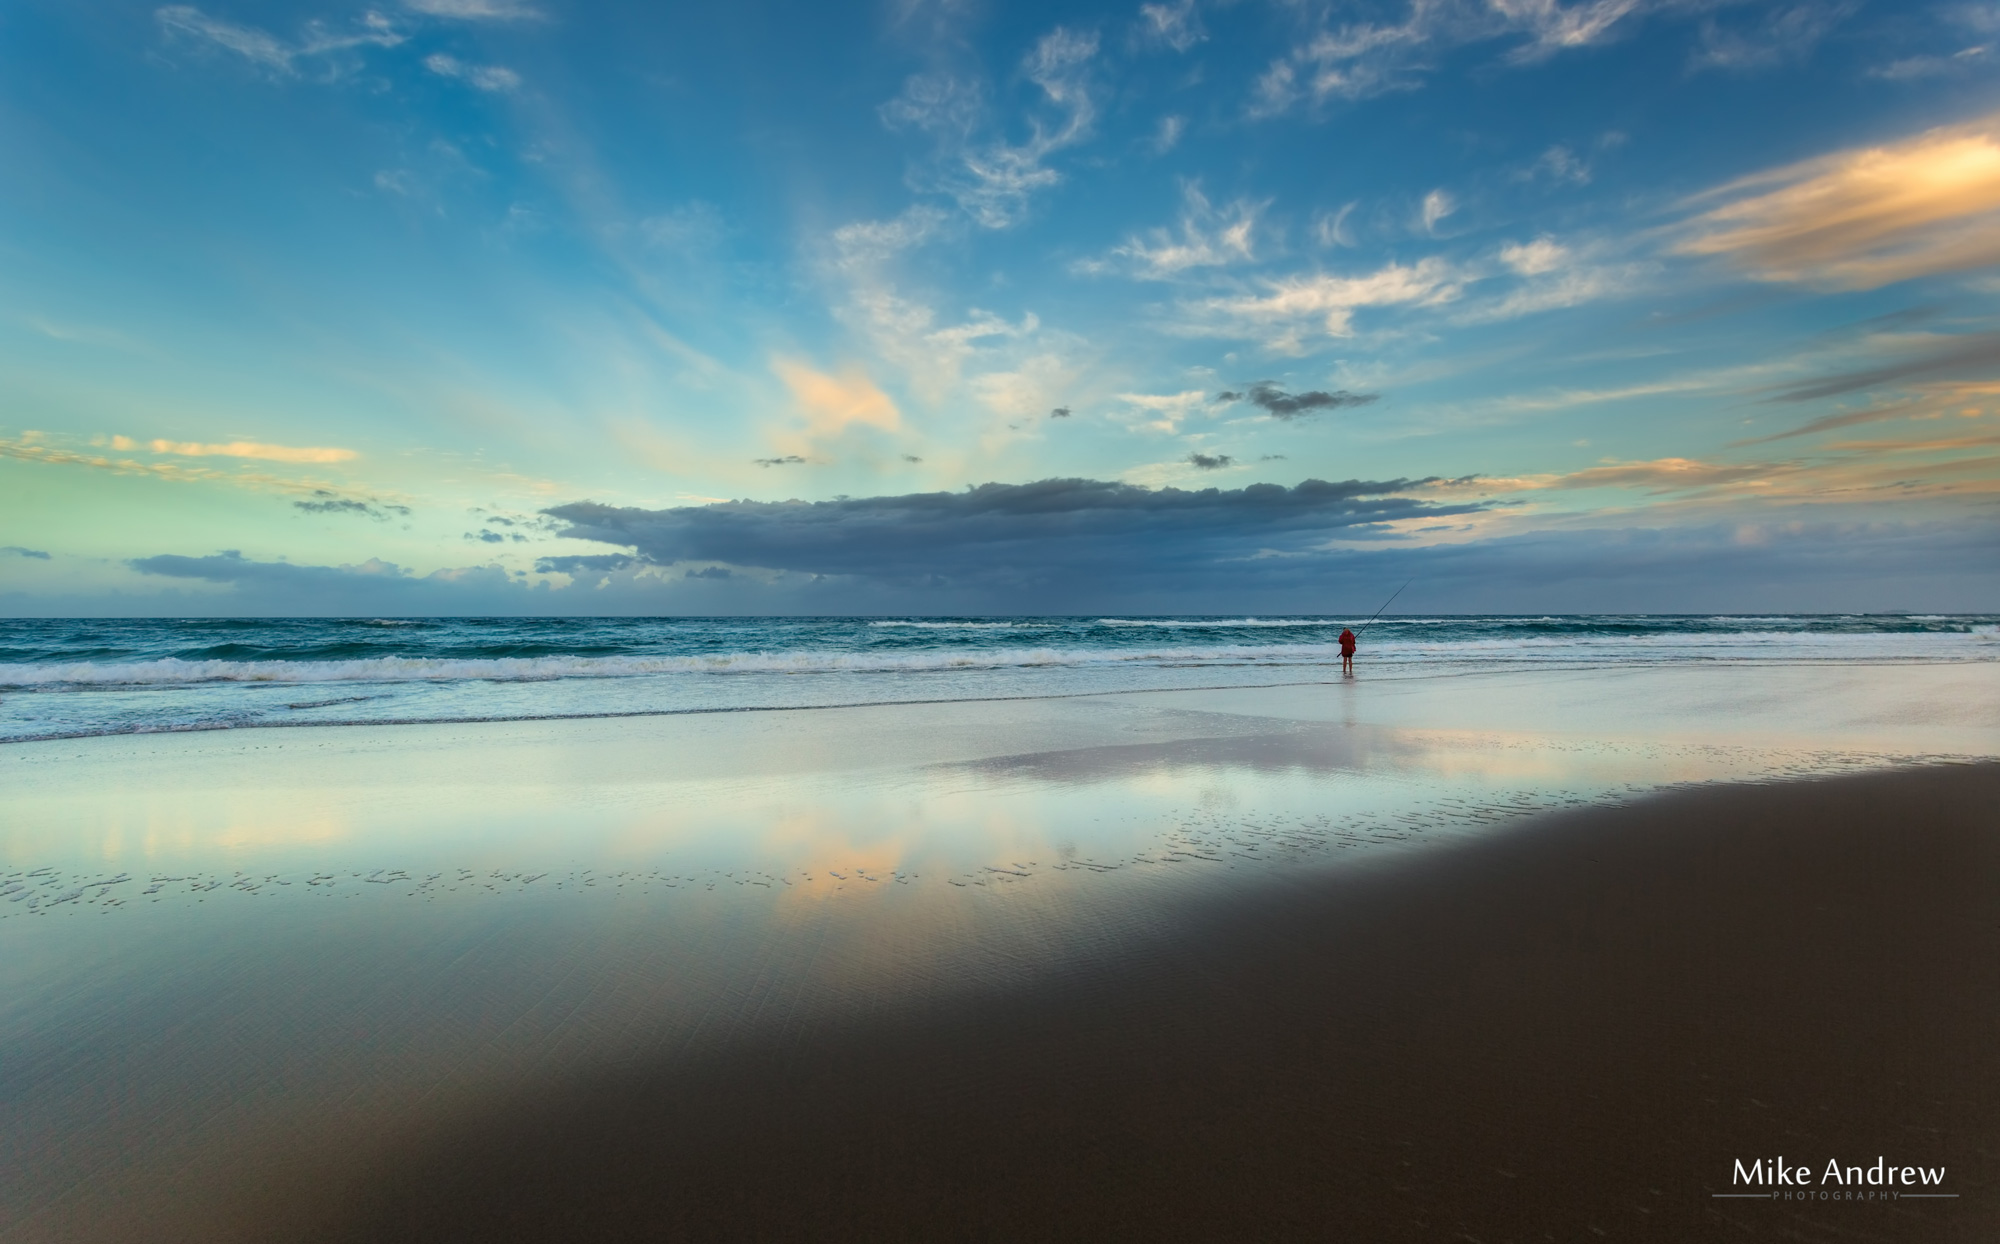 Surf Fishing at Surfers Paradise Beach on the Gold Coast- Mike Andrew Photography